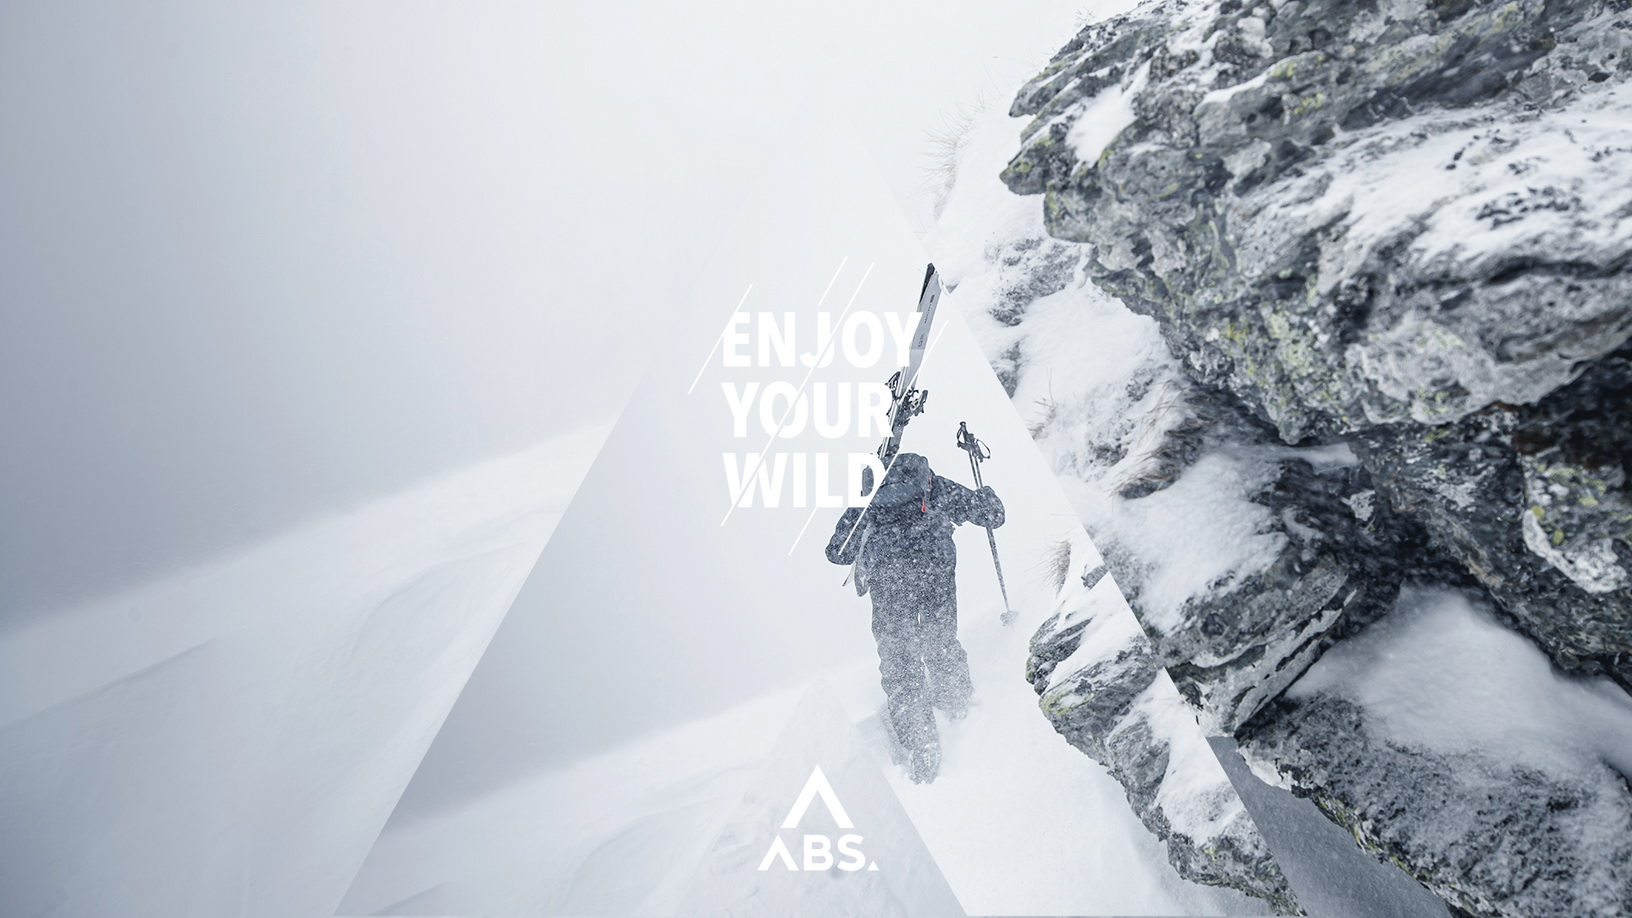 ABS. PROTECTION IN ADVENTURE